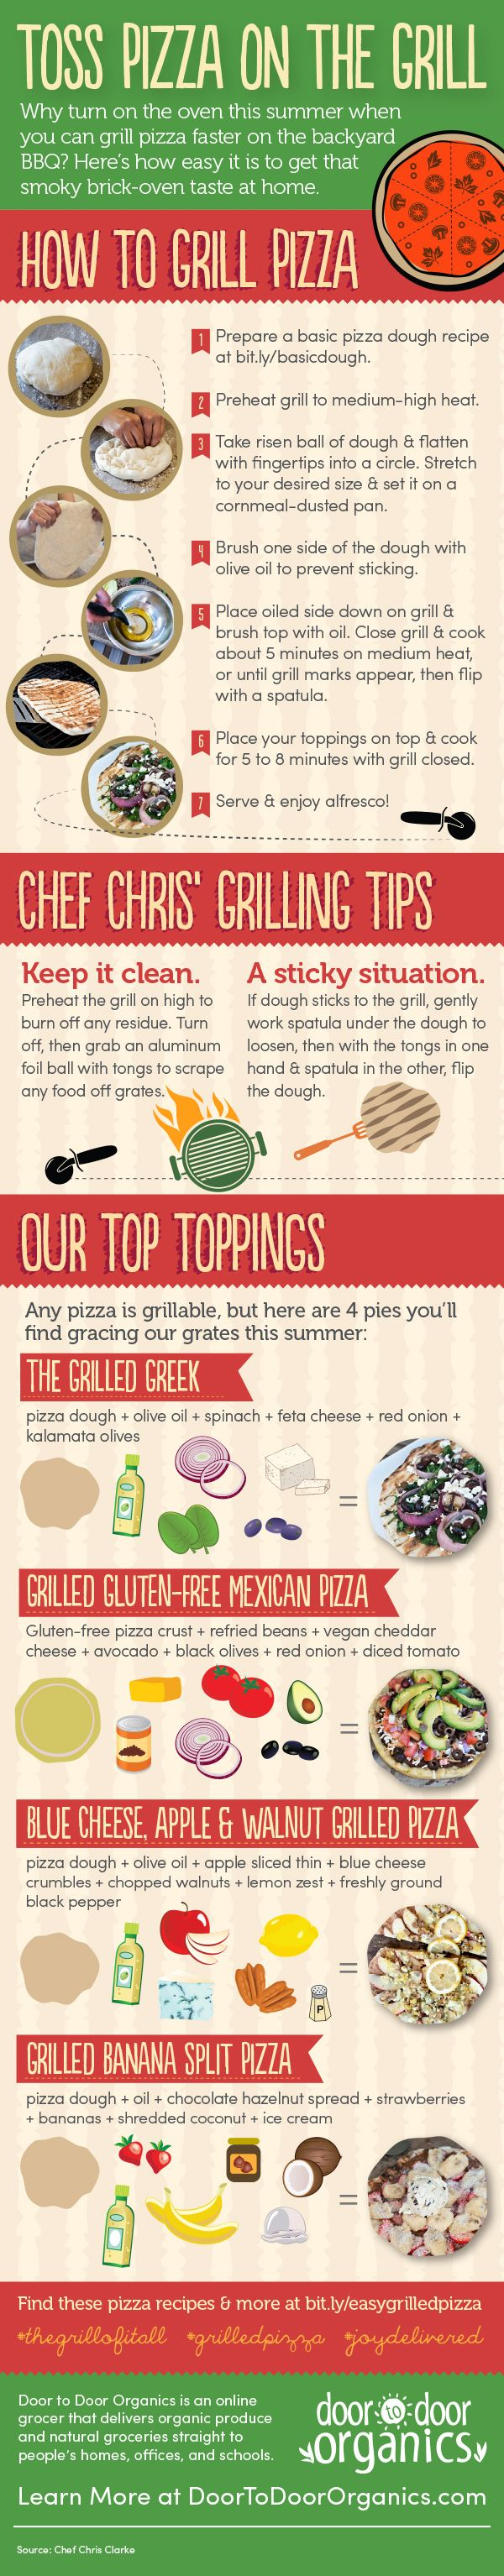 How to Grill Pizza [Infographic] Learn how to grill a pizza in 7 easy steps, plus Chef Chris' ultimate grilling tips, and get 4 unique grilled pizza recipes.